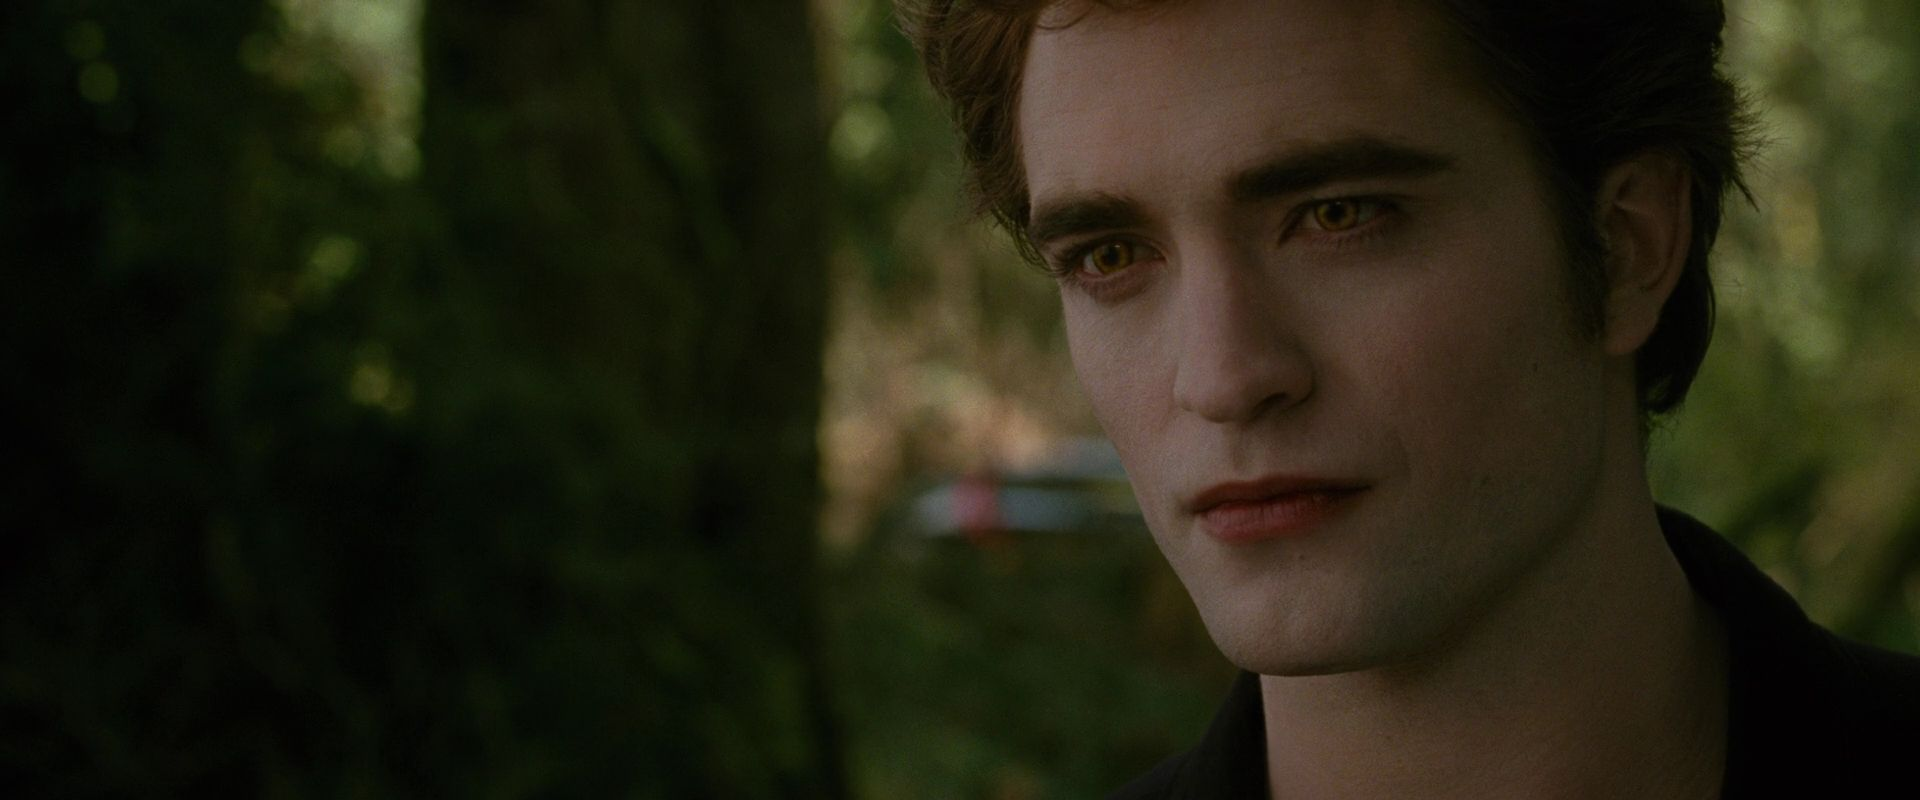 Edward Cullen - Edward Cullen Photo (18085436) - Fanpop